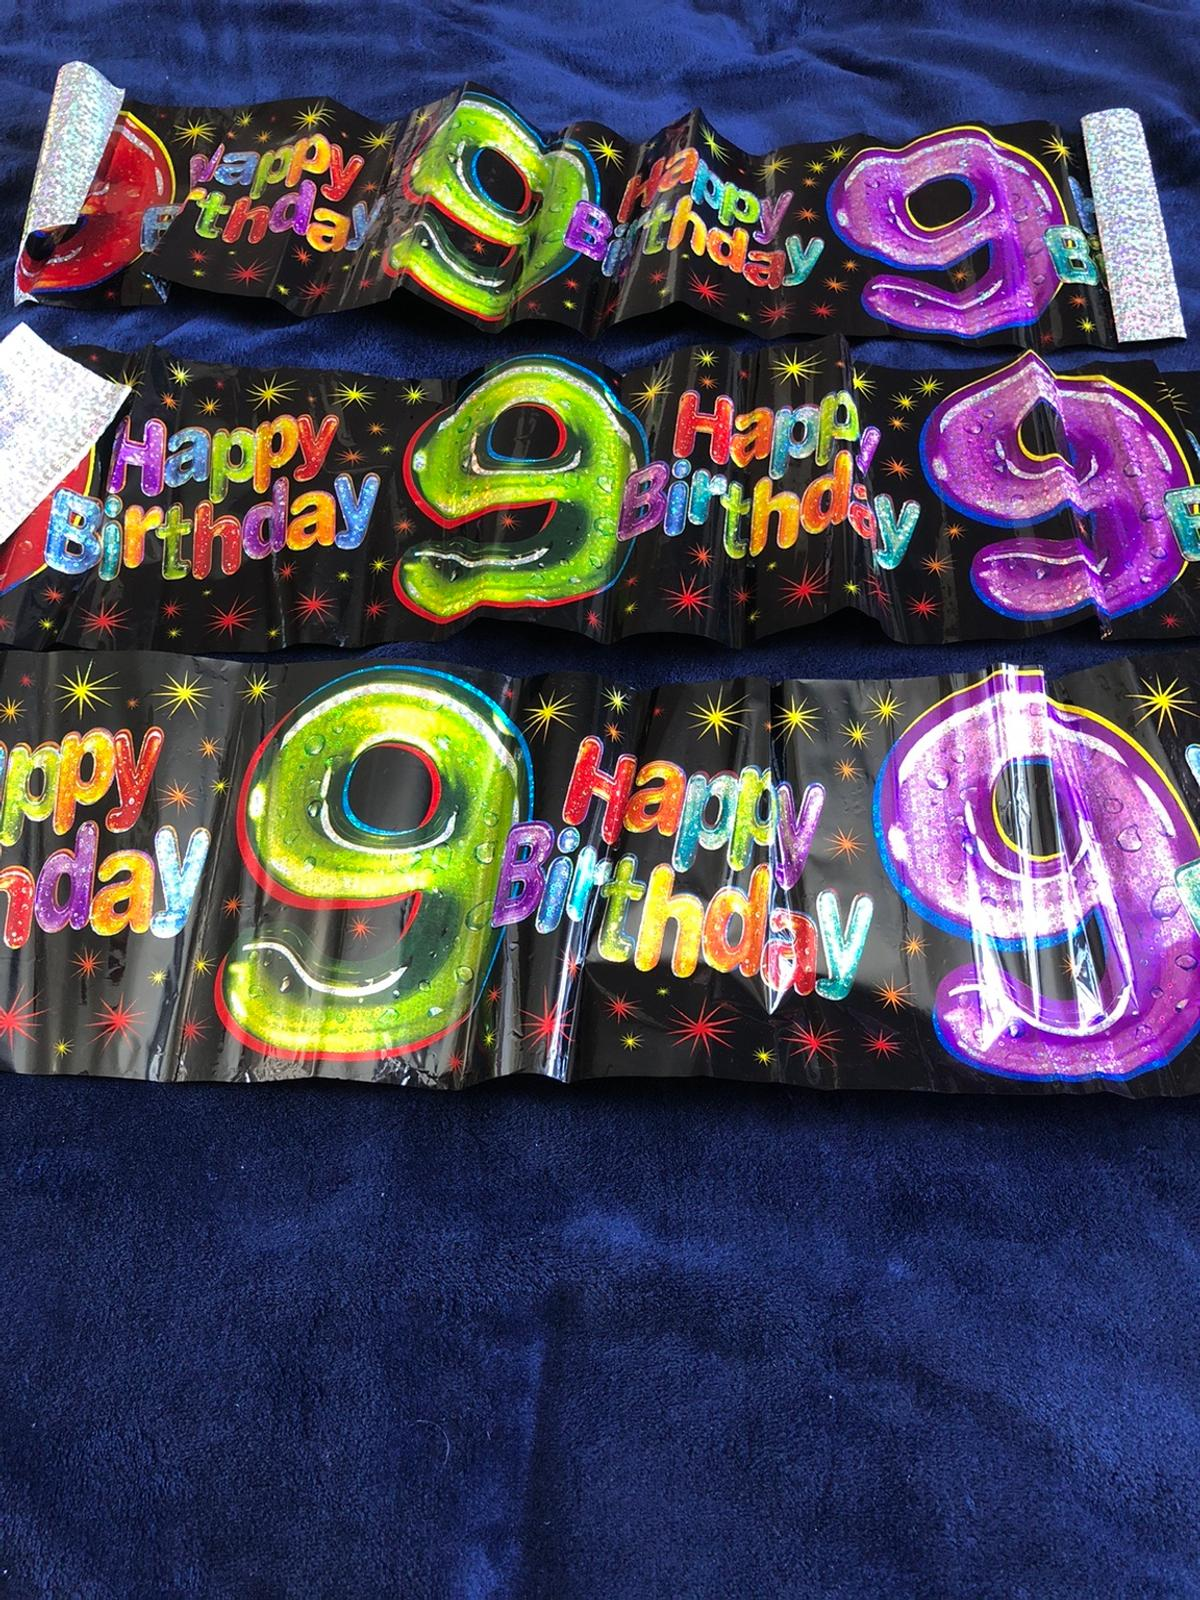 3 x small Happy 9th Birthday banner. Collection only from Dudley DY1 - sorry no posting or delivery. Check out my other items.